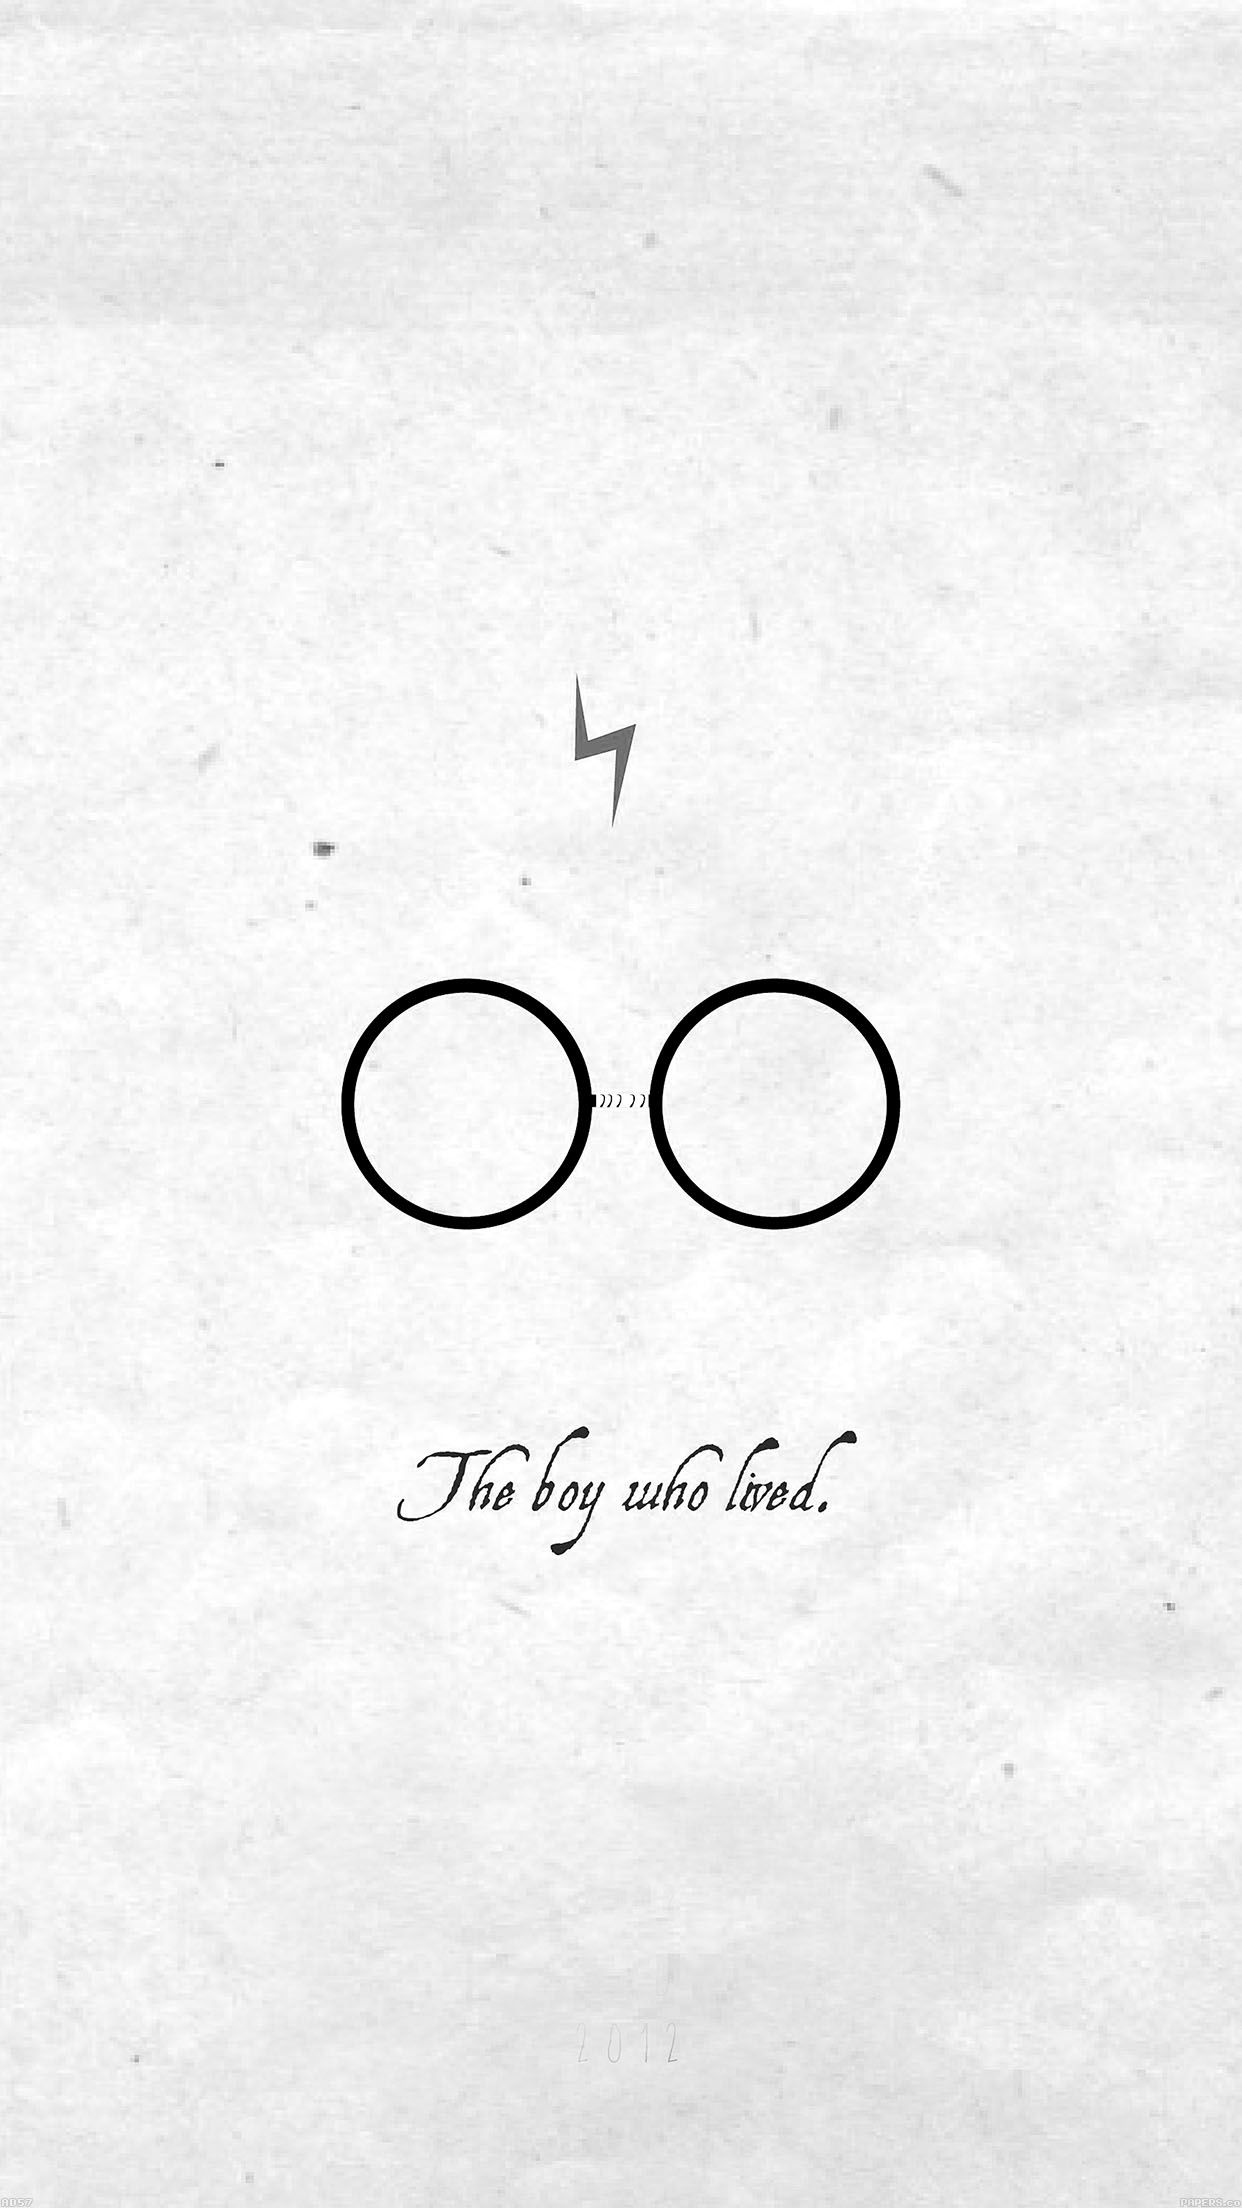 Good Wallpaper Harry Potter Animated - 7b0e11a4d3d1642c7b30cf57f80326d3  Trends_3135.jpg